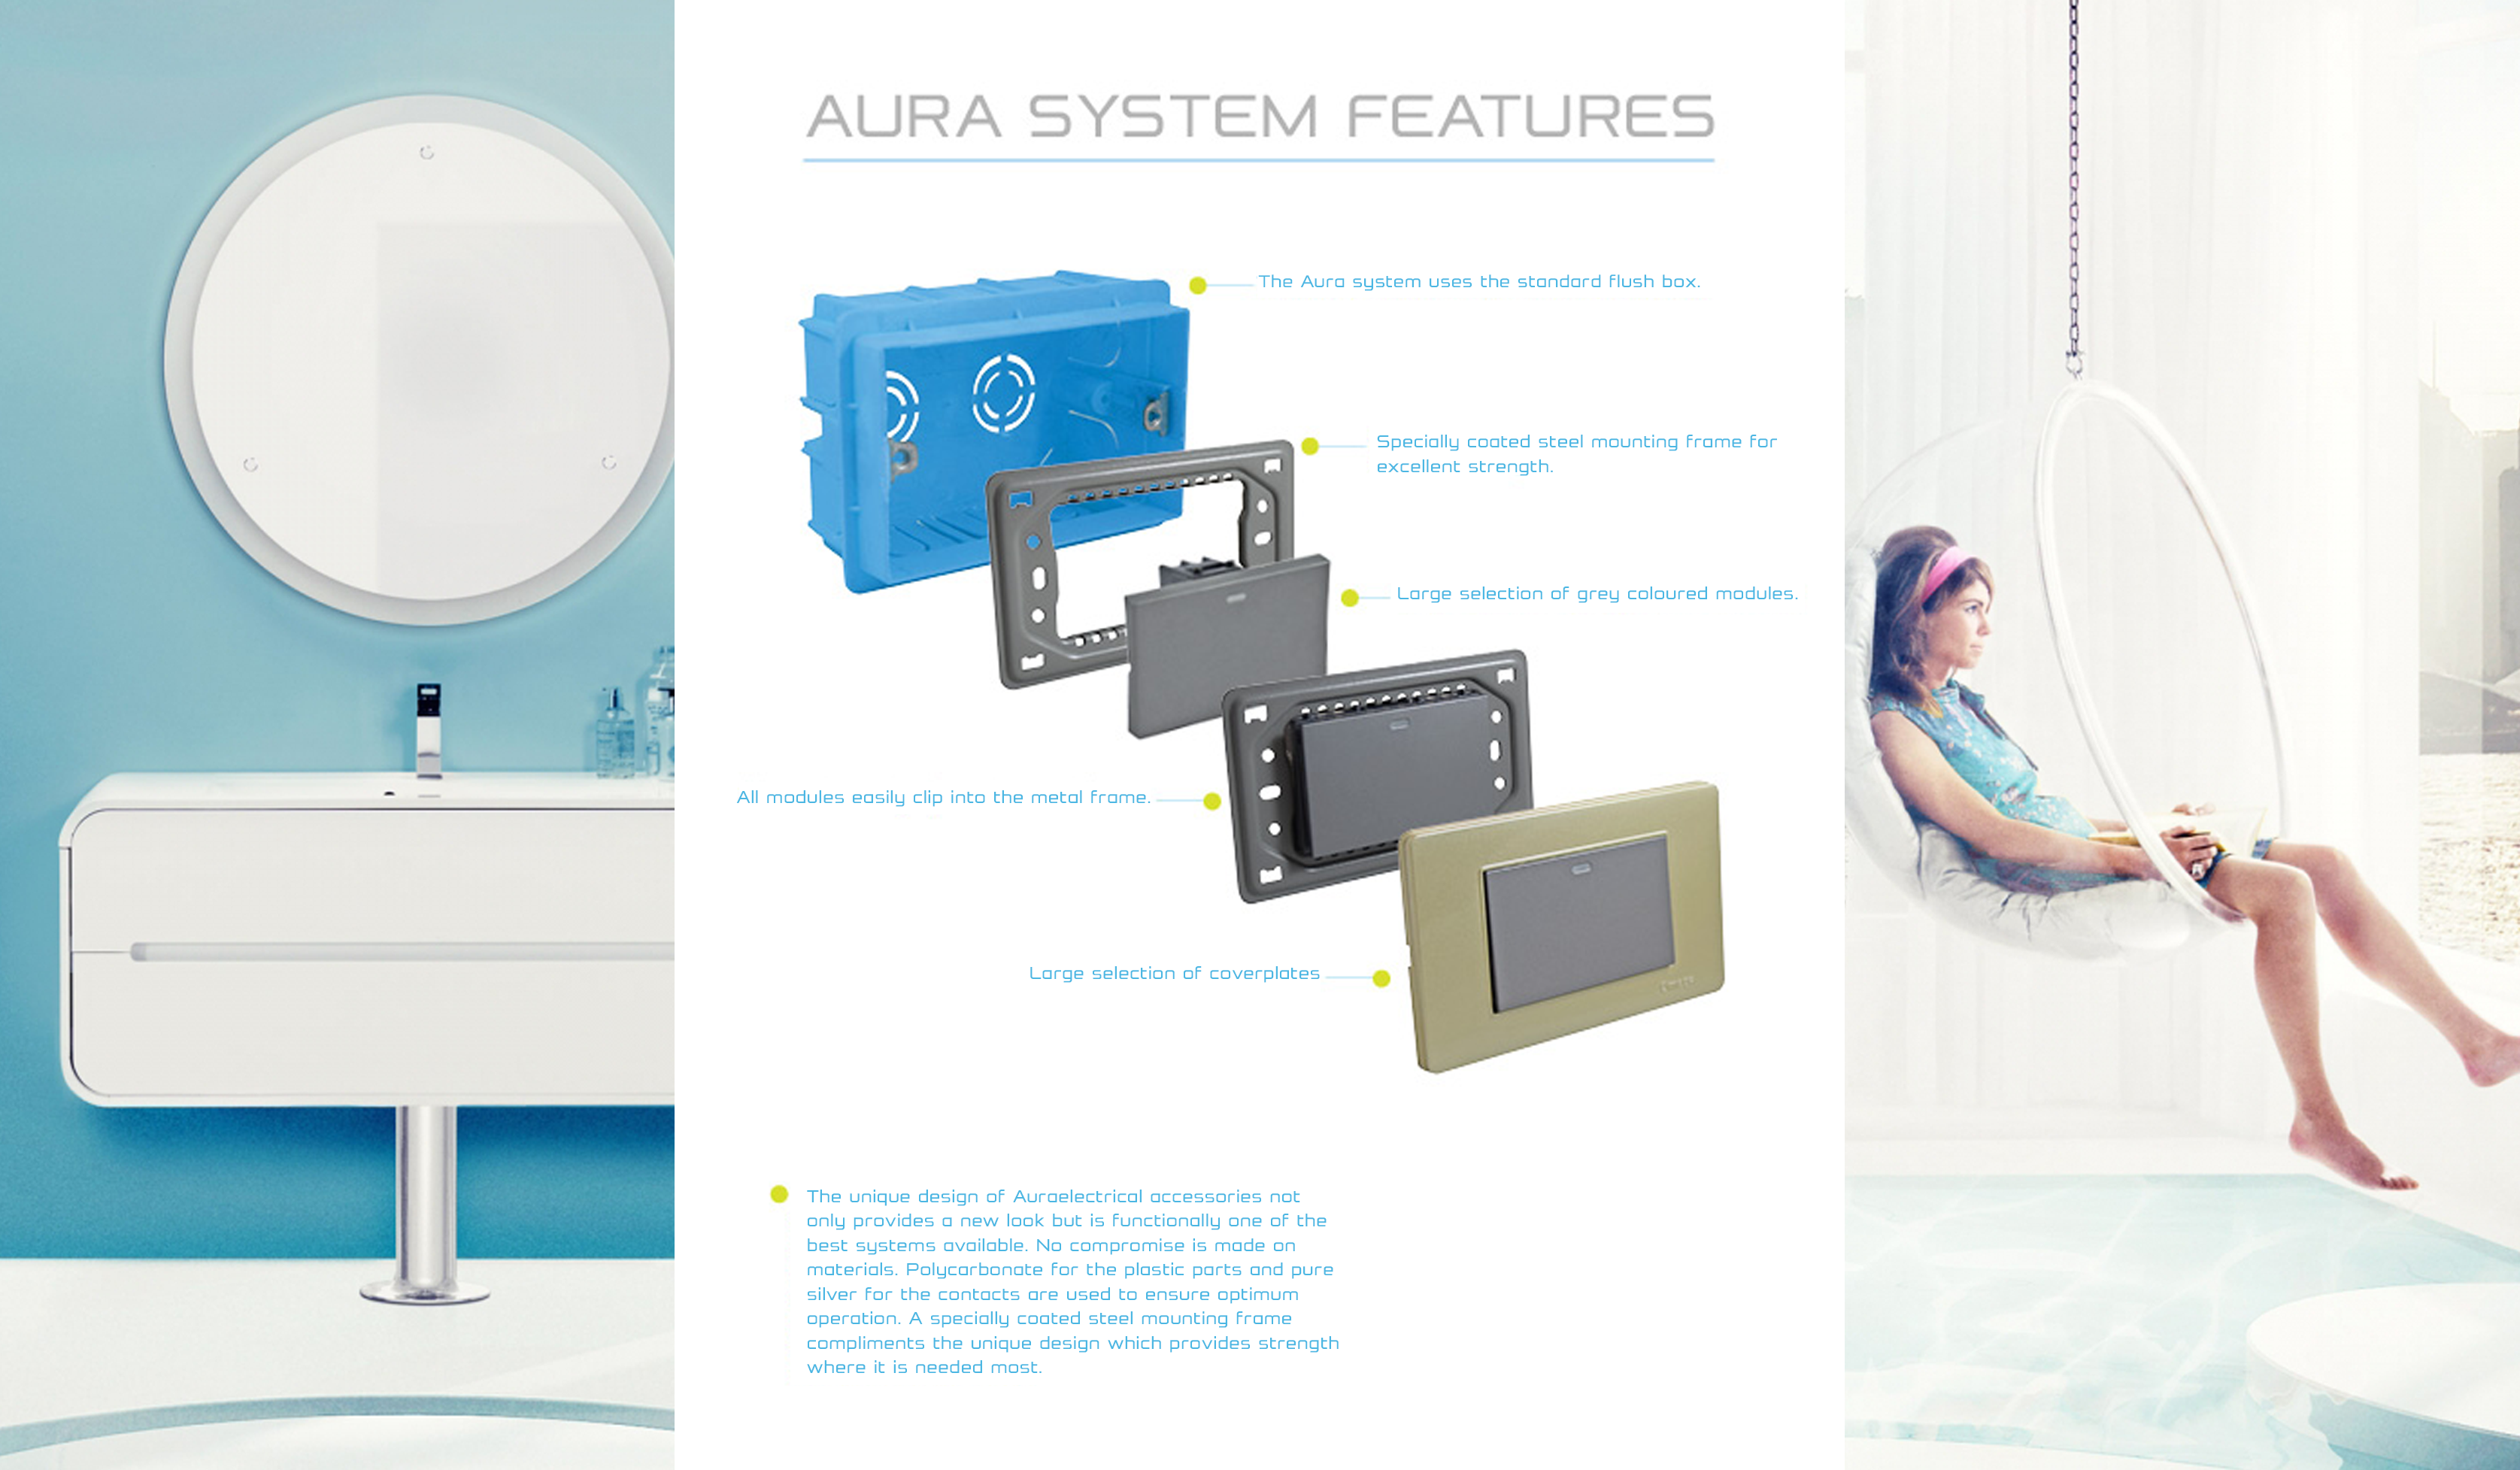 AURA SYSTEM FEATURES